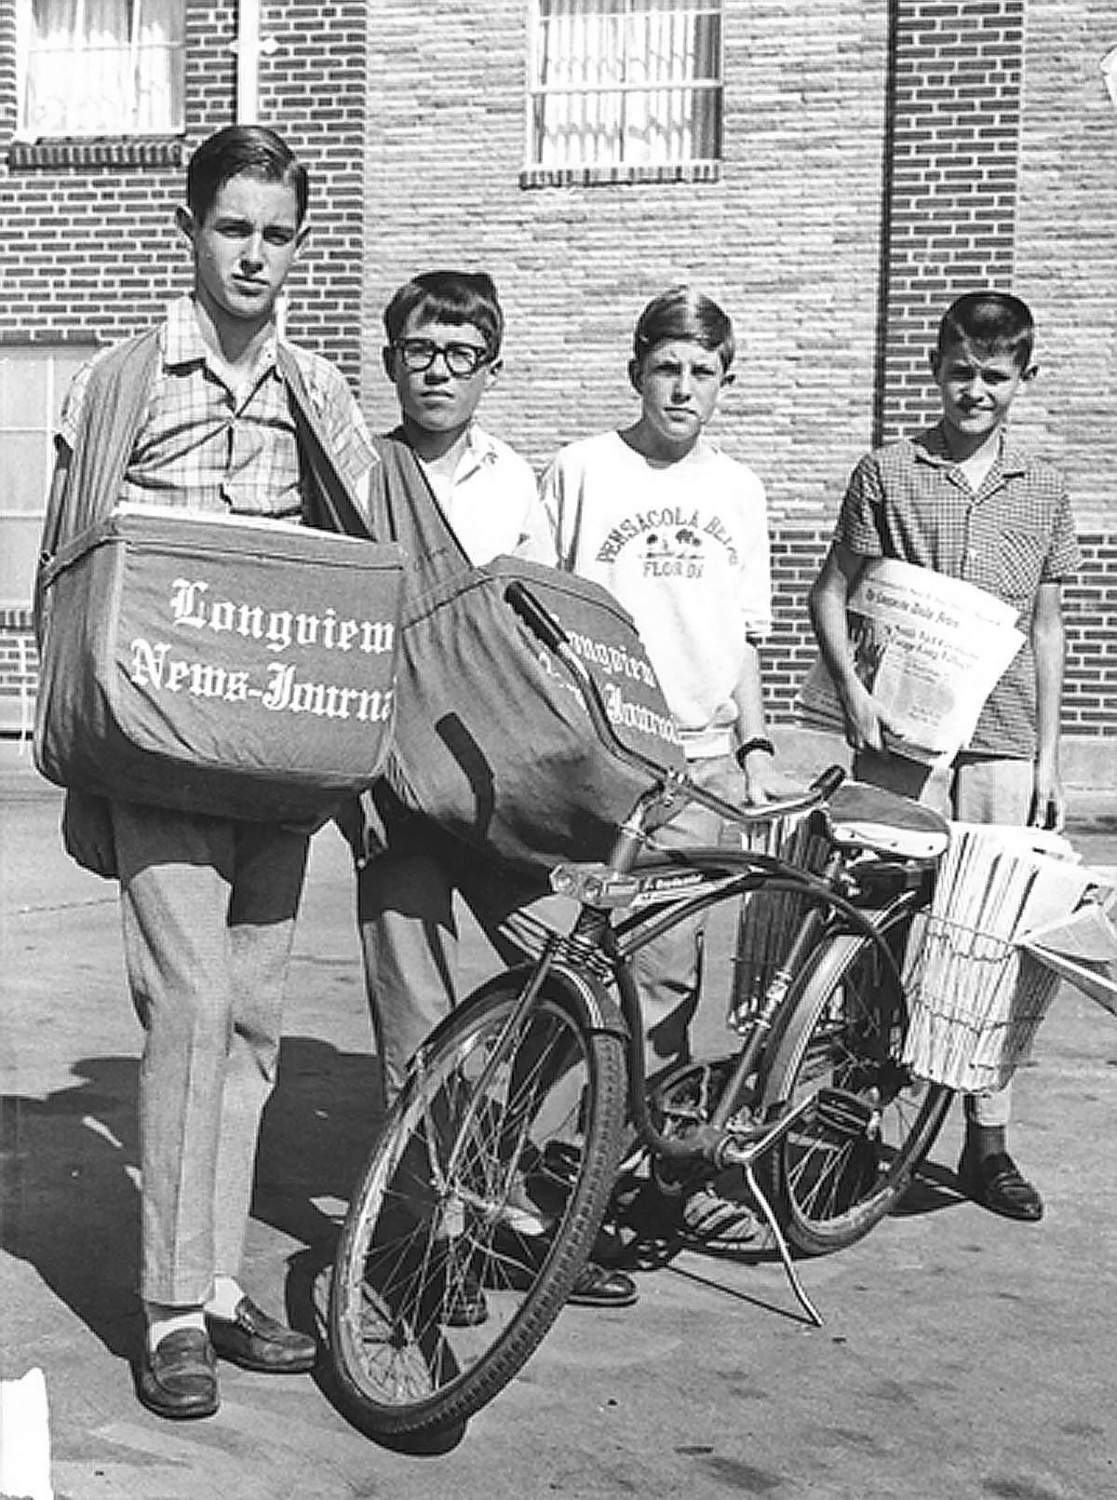 Paperboys, 1968, Longview, Texas. I'm the second kid from the left.